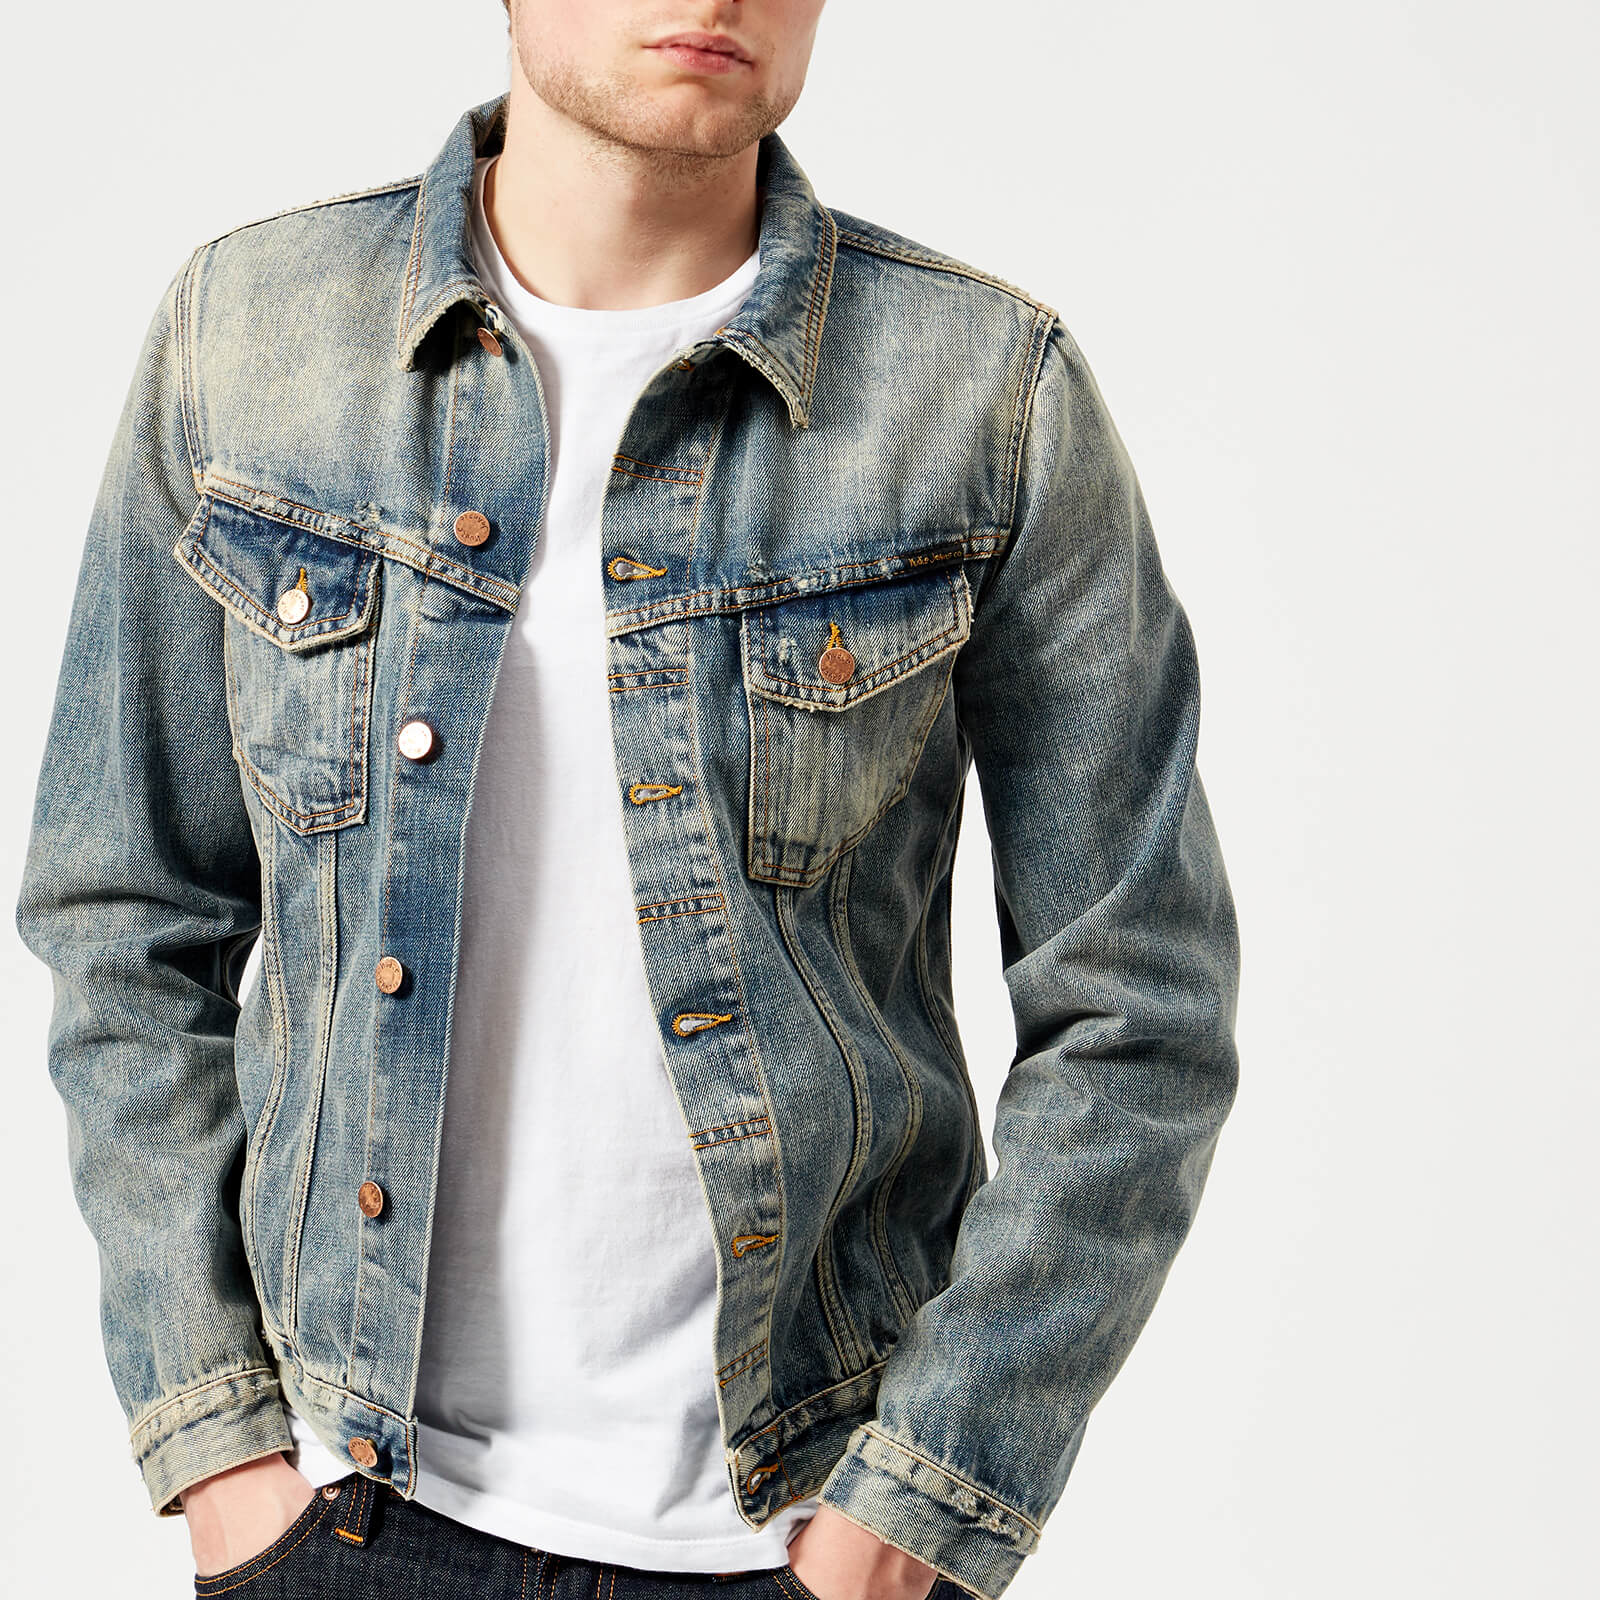 523f818014 Nudie Jeans Men s Billy Denim Jacket - Shimmering Indigo - Free UK Delivery  over £50